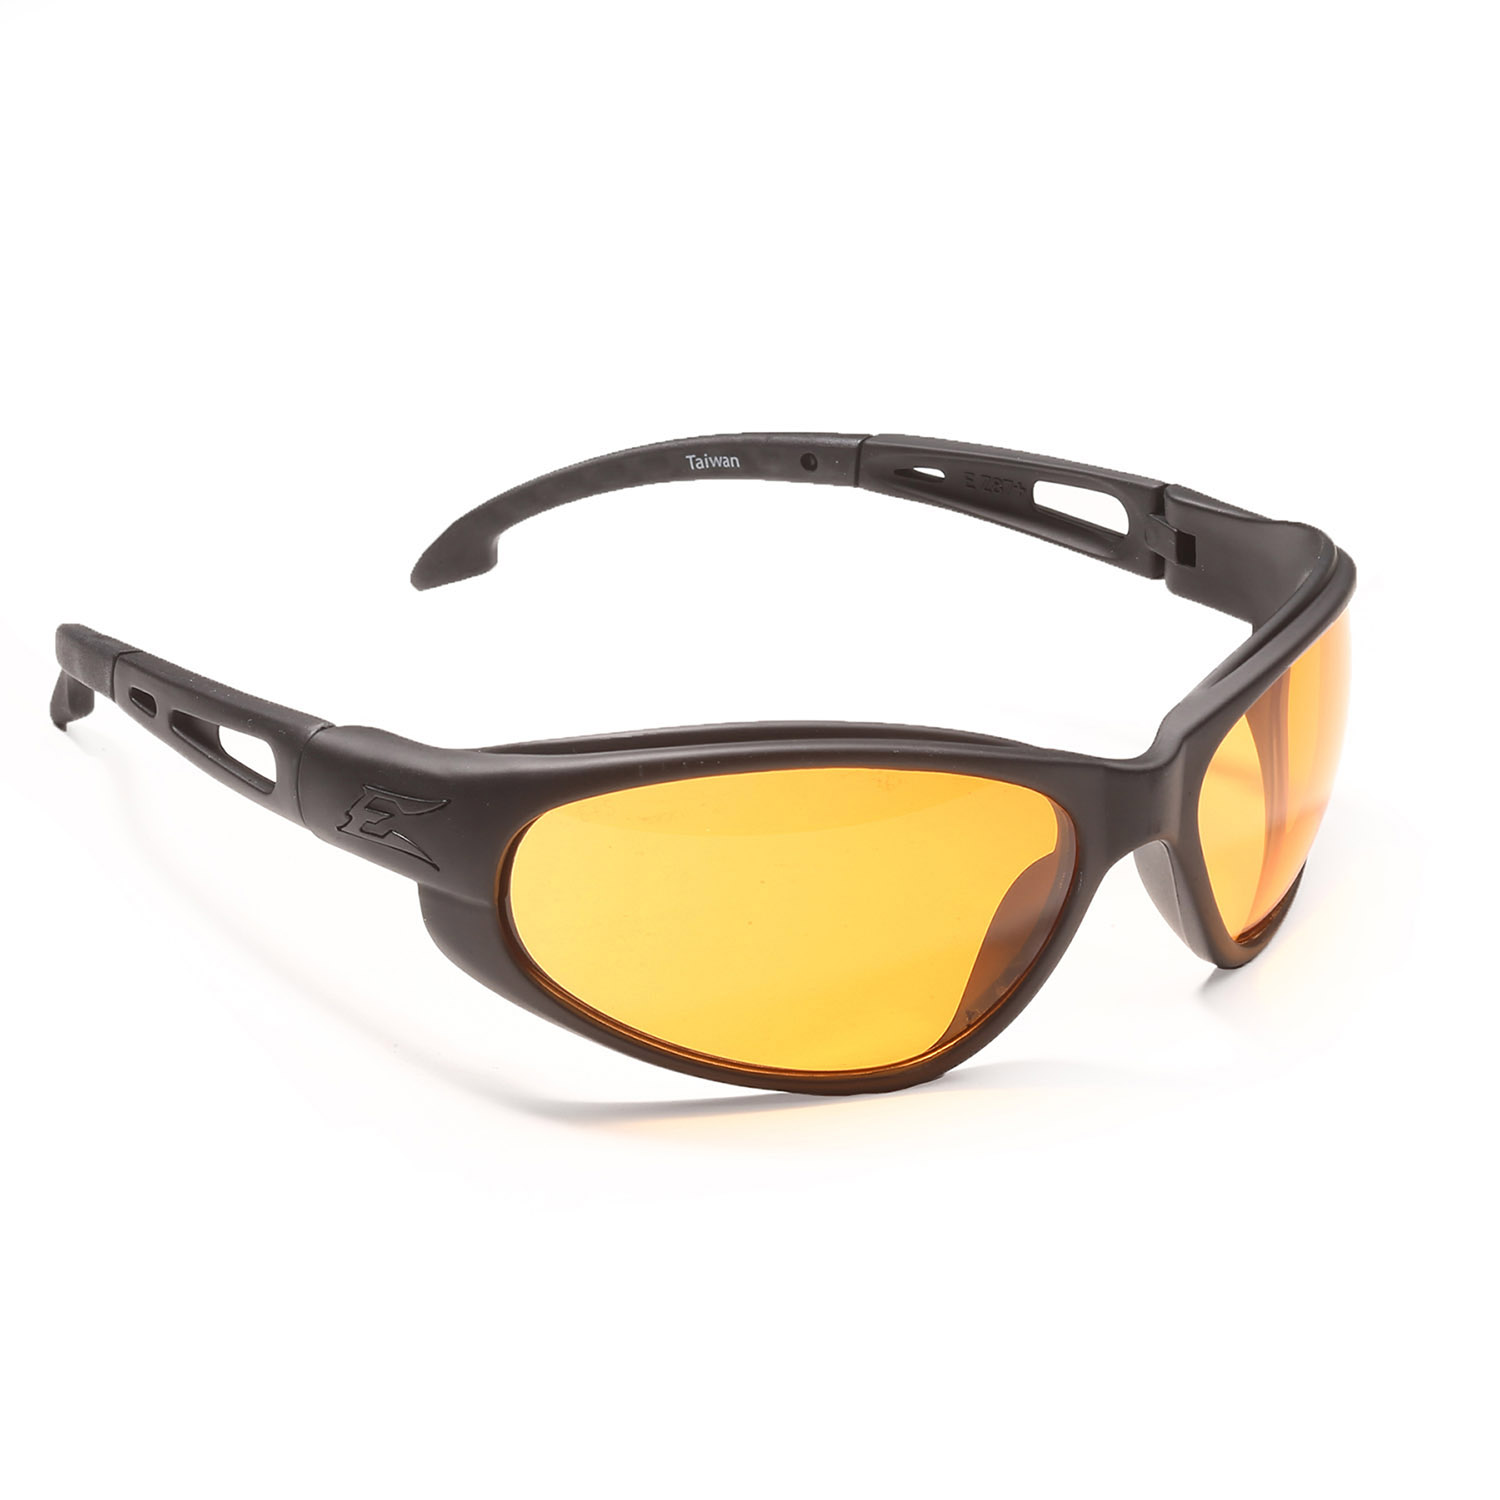 Edge Eyewear Falcon Sunglasses